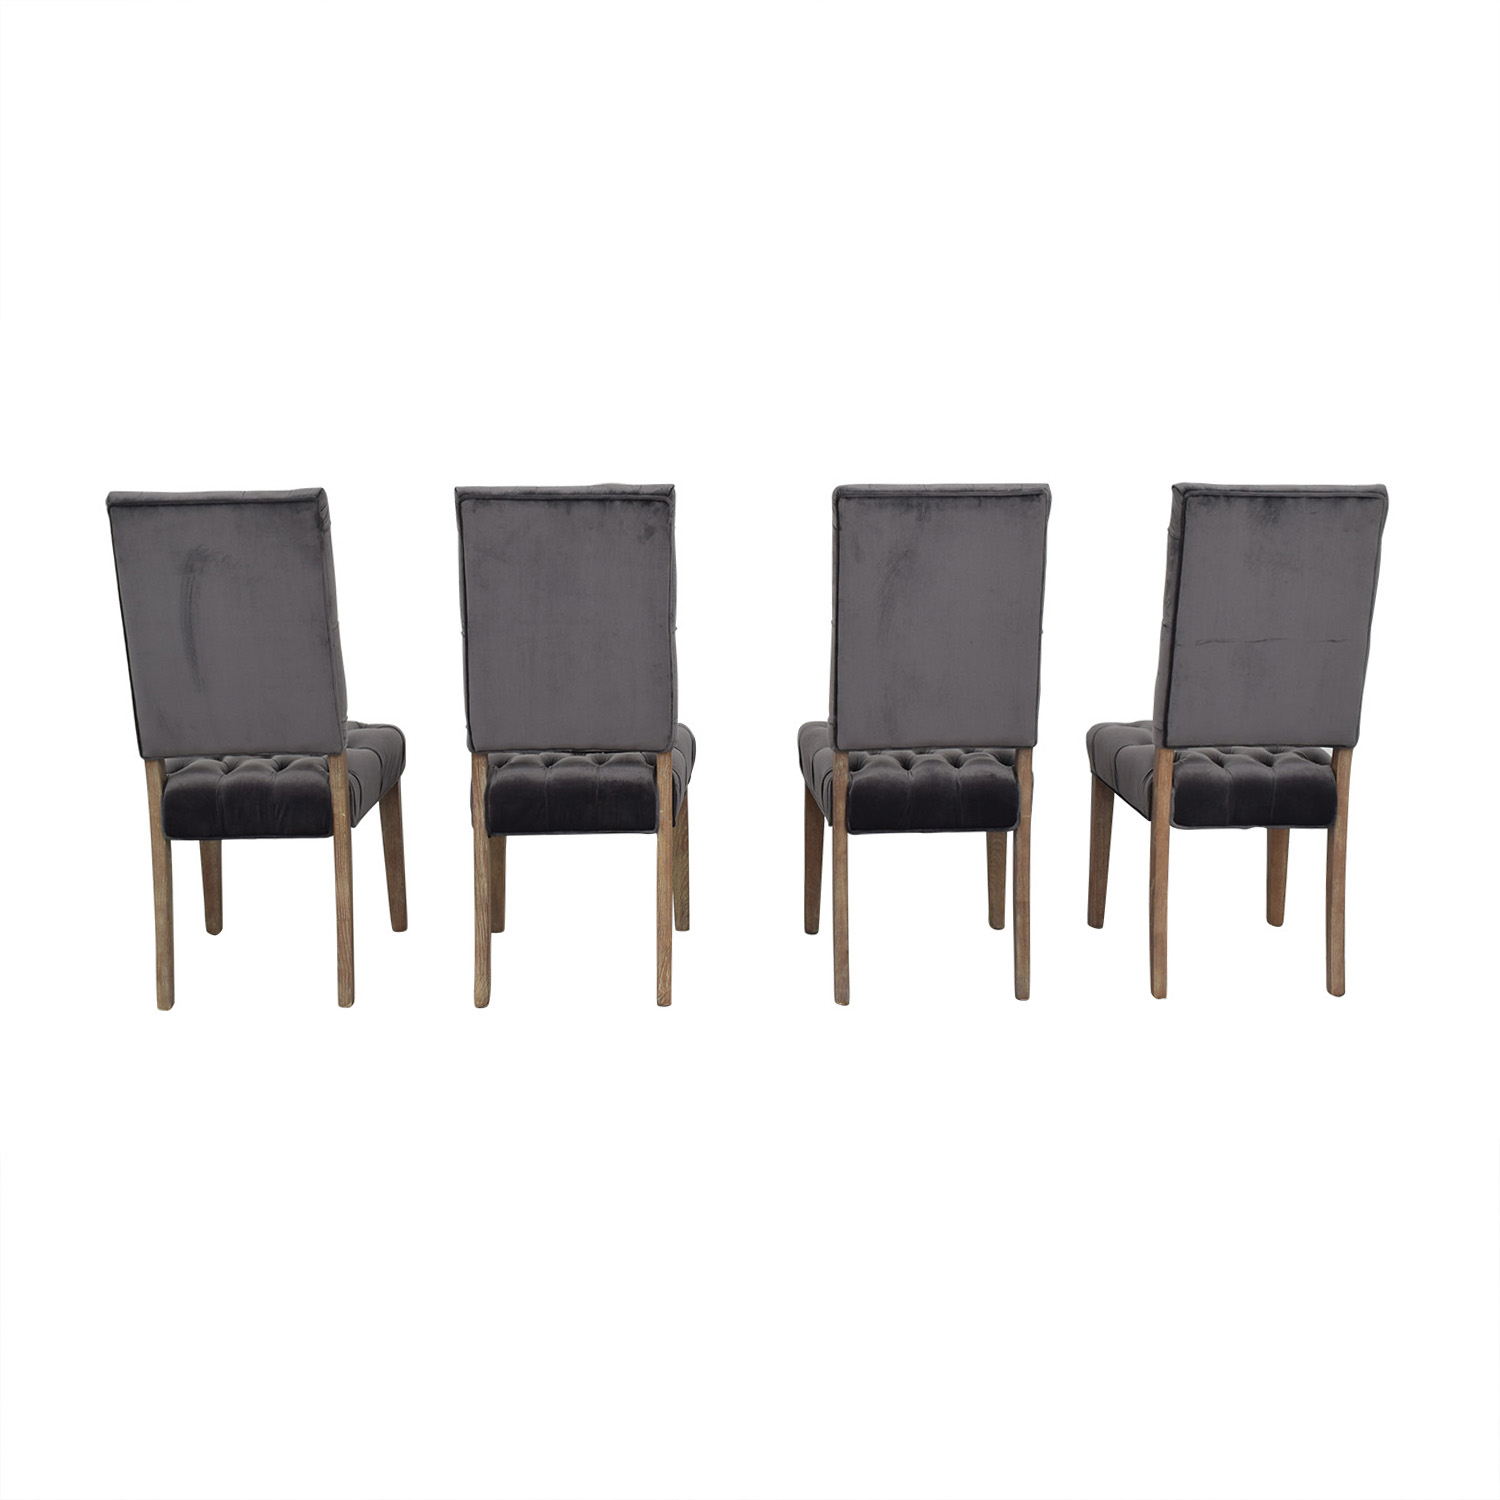 Classic Concepts Classic Concepts Onyx Tufted Dining Chairs Onyx